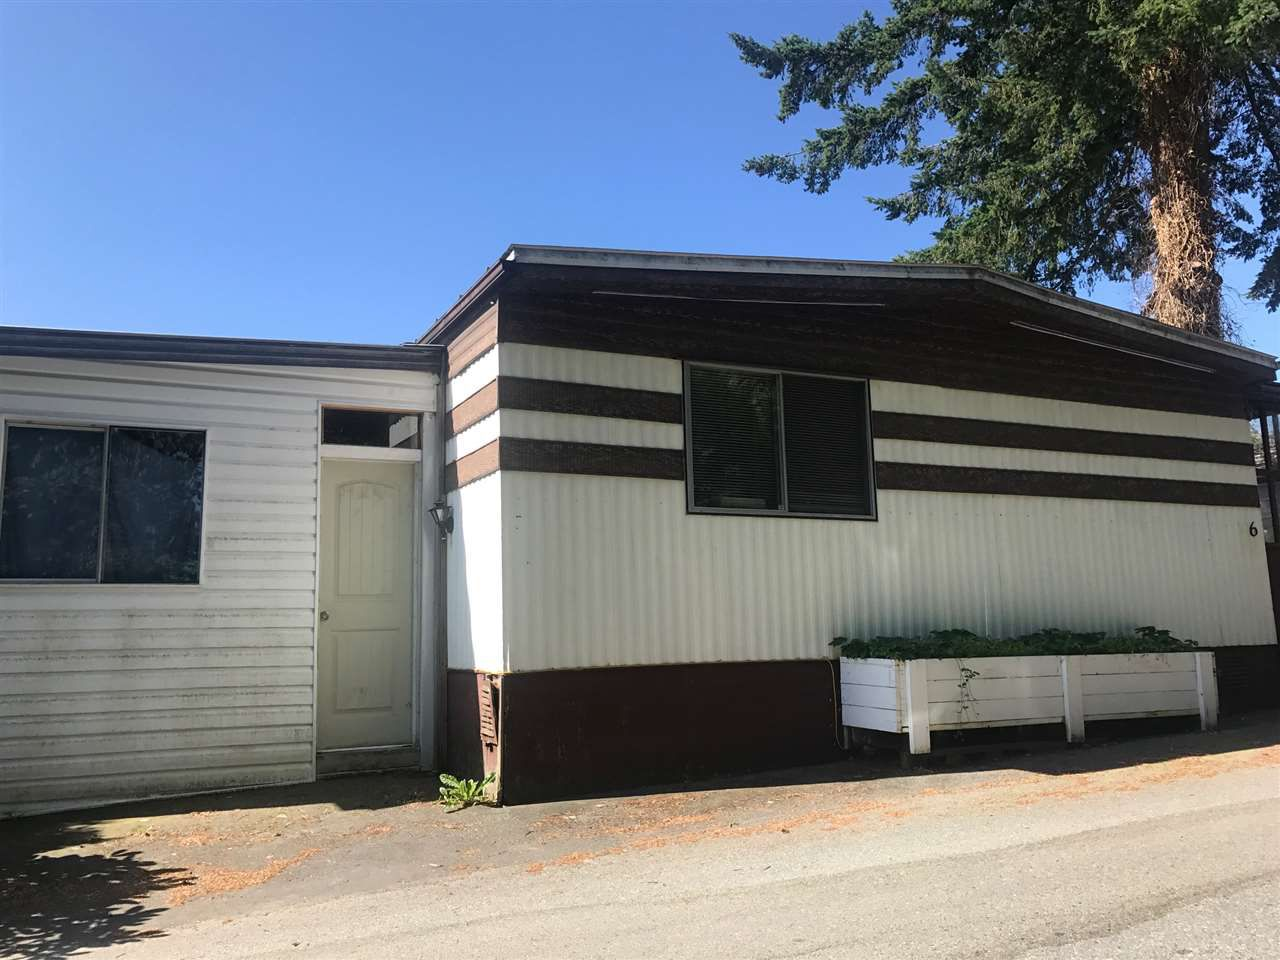 """Main Photo: 6 8190 KING GEORGE Boulevard in Surrey: Bear Creek Green Timbers Manufactured Home for sale in """"King George"""" : MLS®# R2185595"""